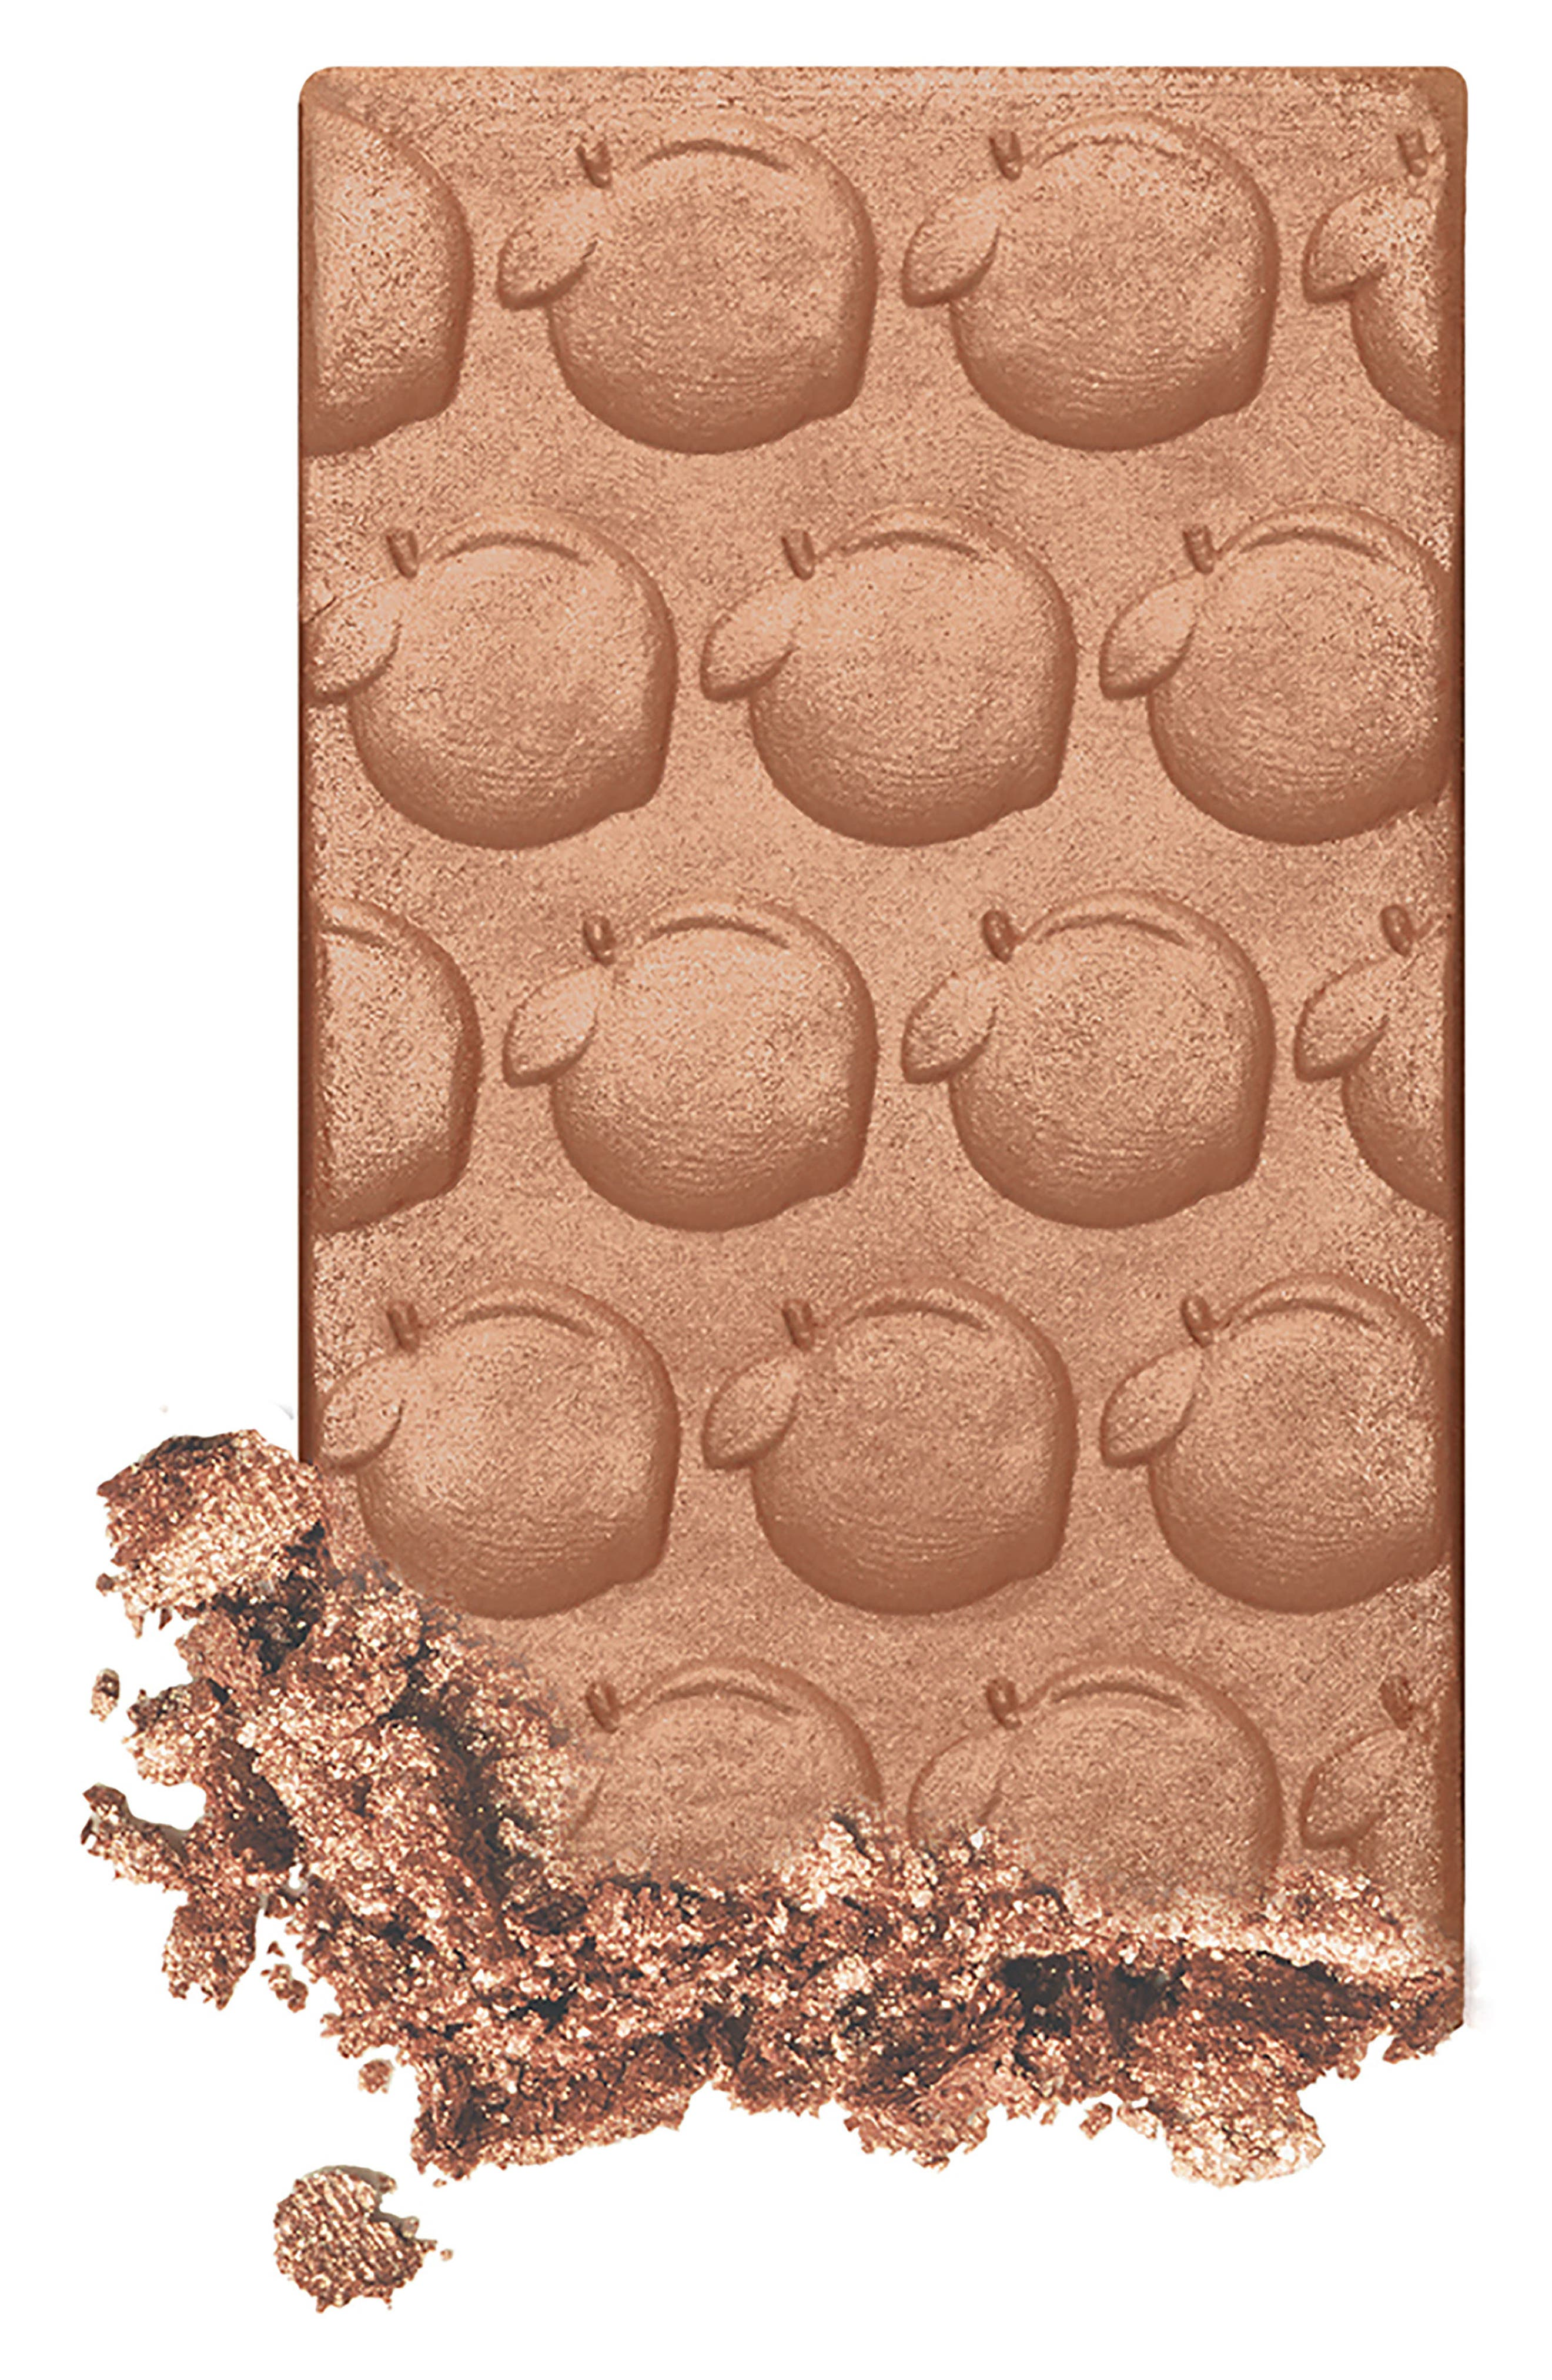 Sweet Peach Glow Highlighting Palette,                             Alternate thumbnail 7, color,                             No Color